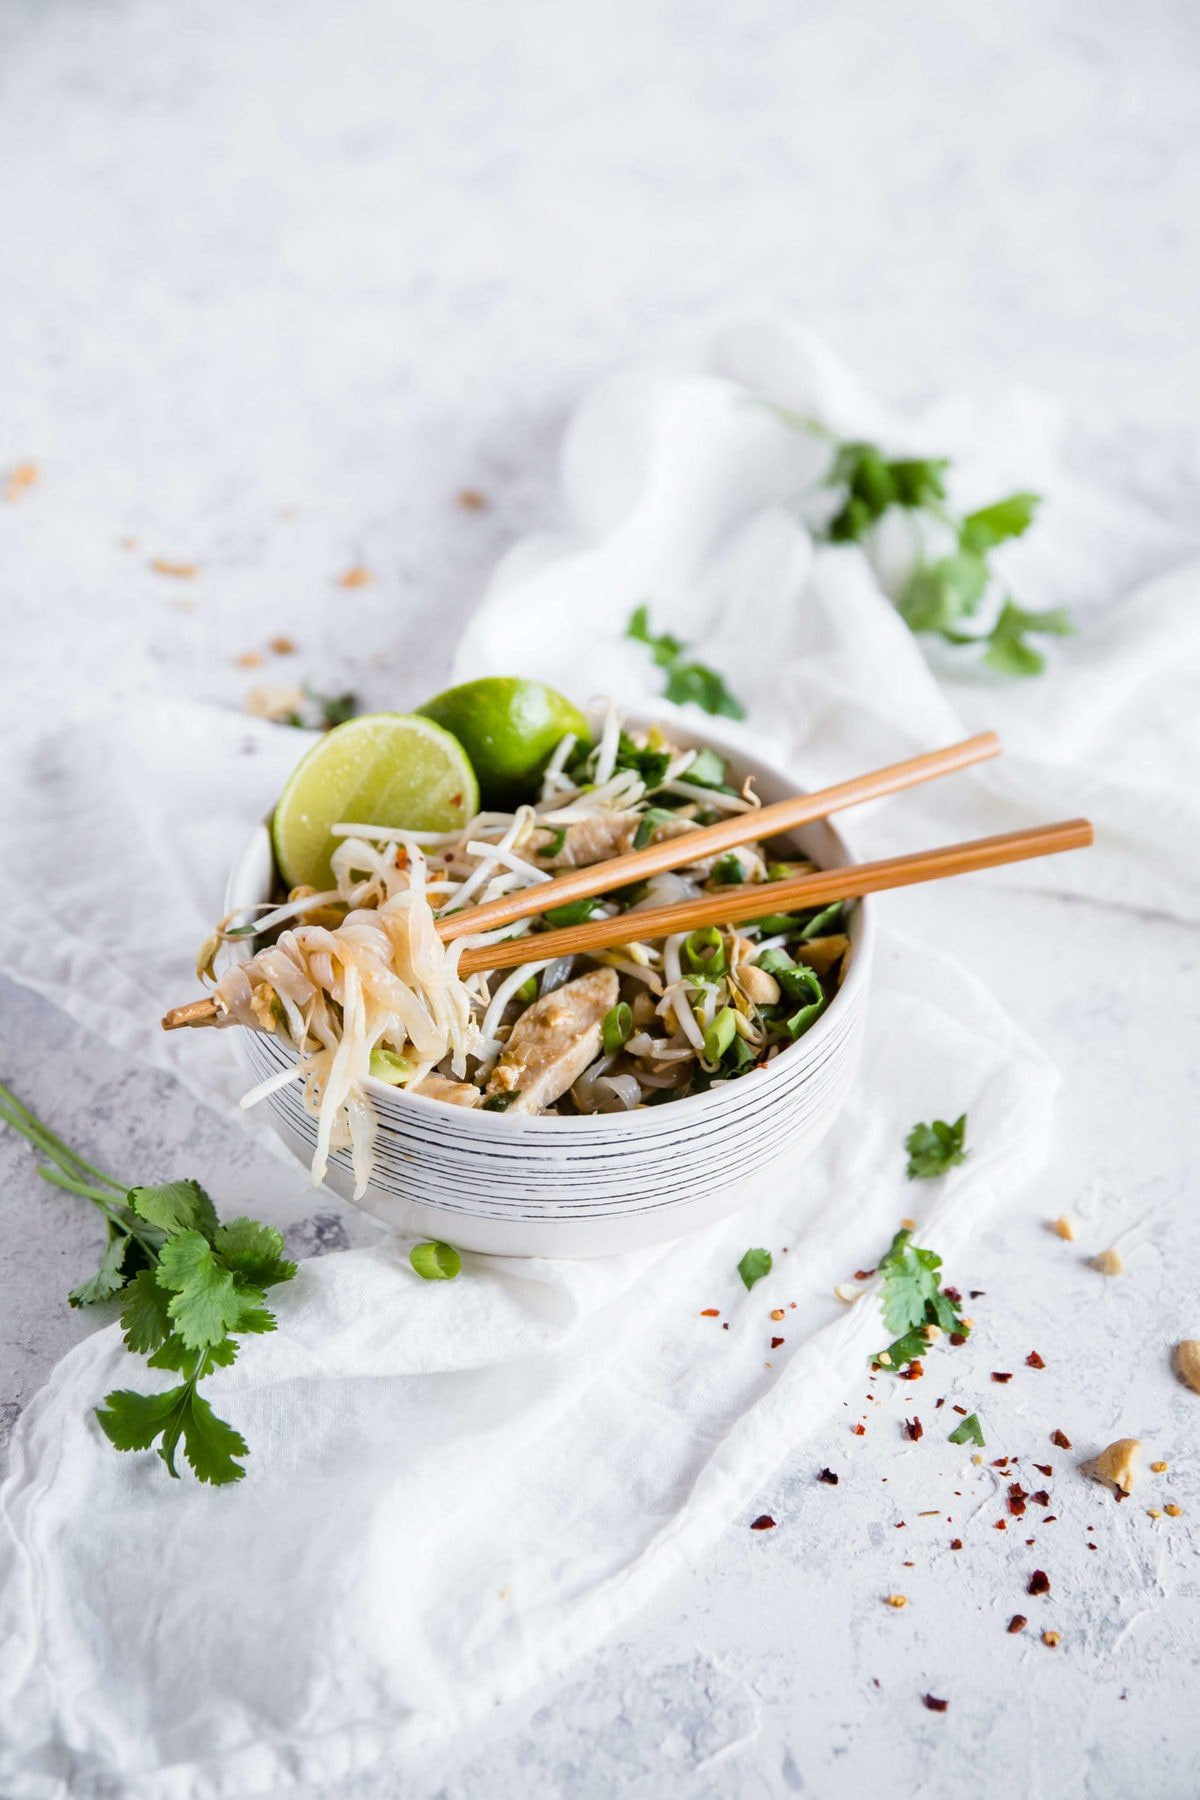 keto Pad Thai, served in a white ceramic bowl with wooden chopsticks and garnished with lime wedges